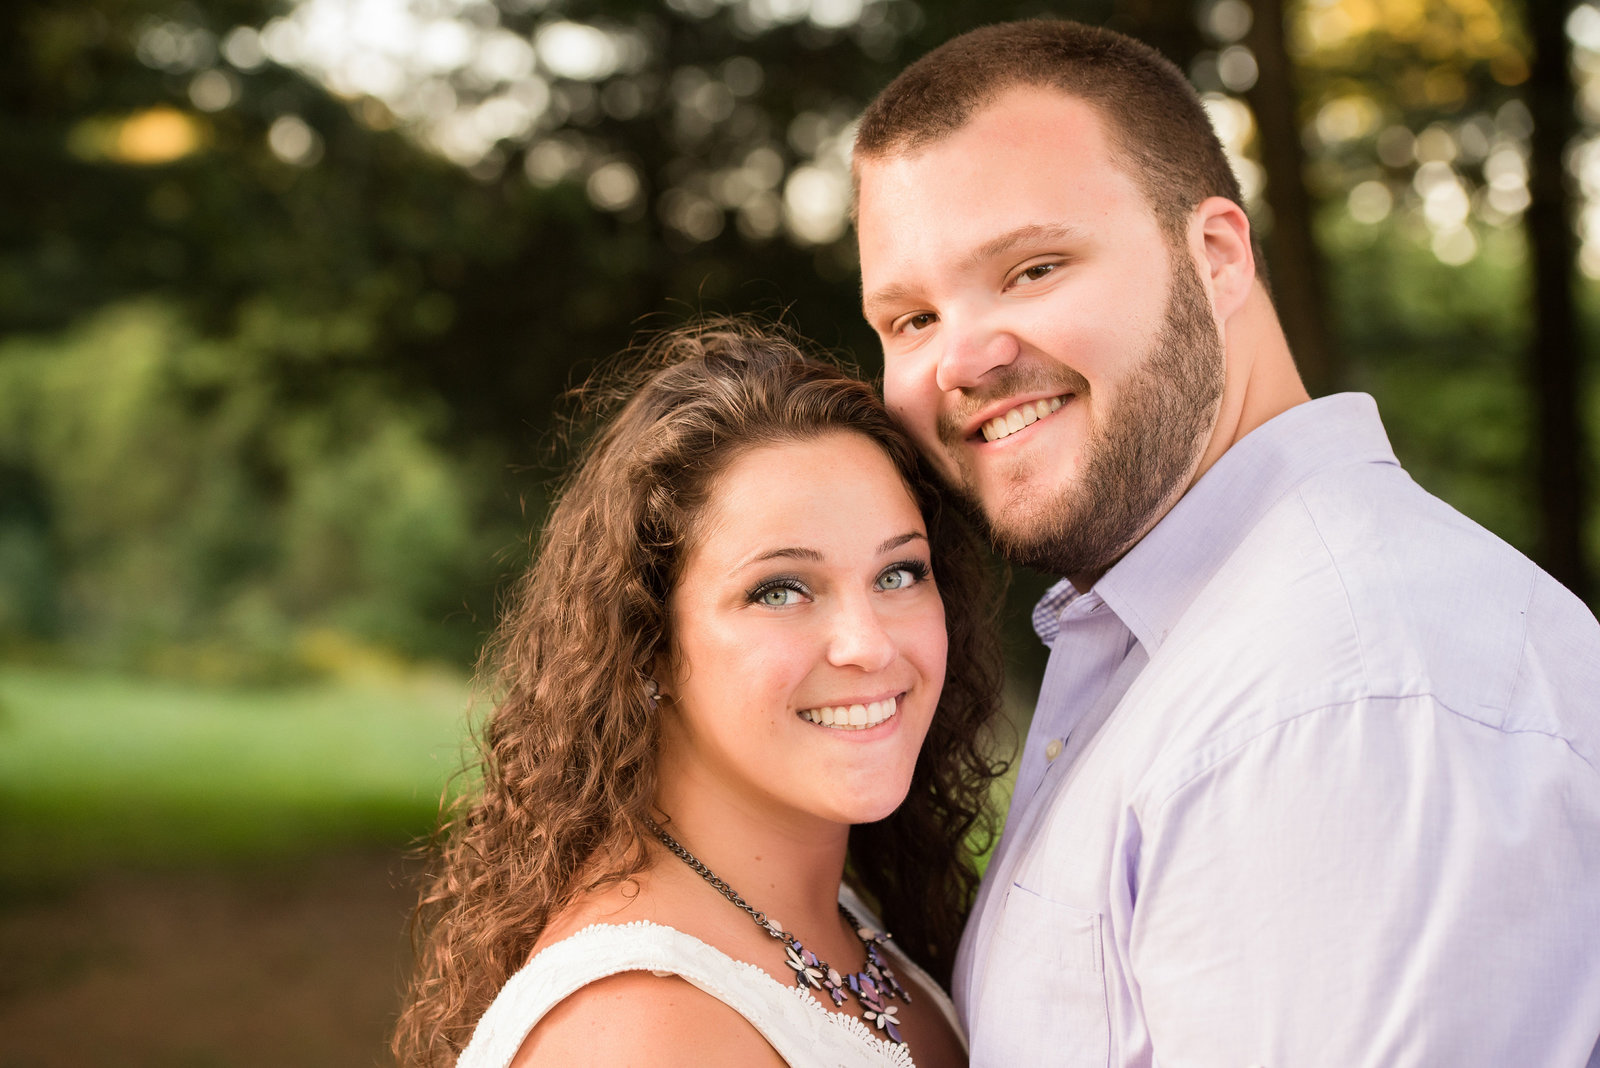 NJ_Rustic_Engagement_Photography149